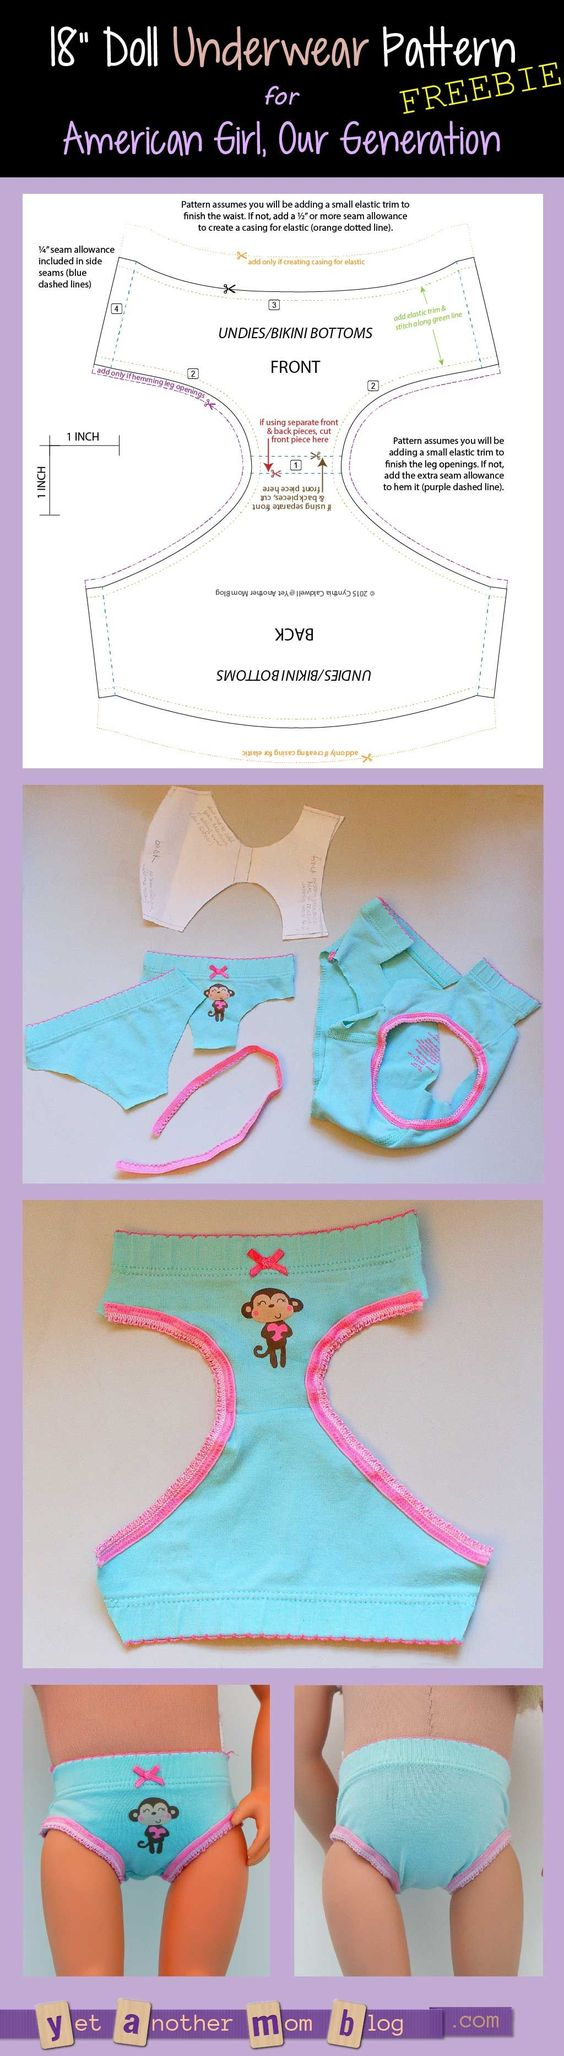 American Girl/Our Generation Doll underwear pattern freebie: